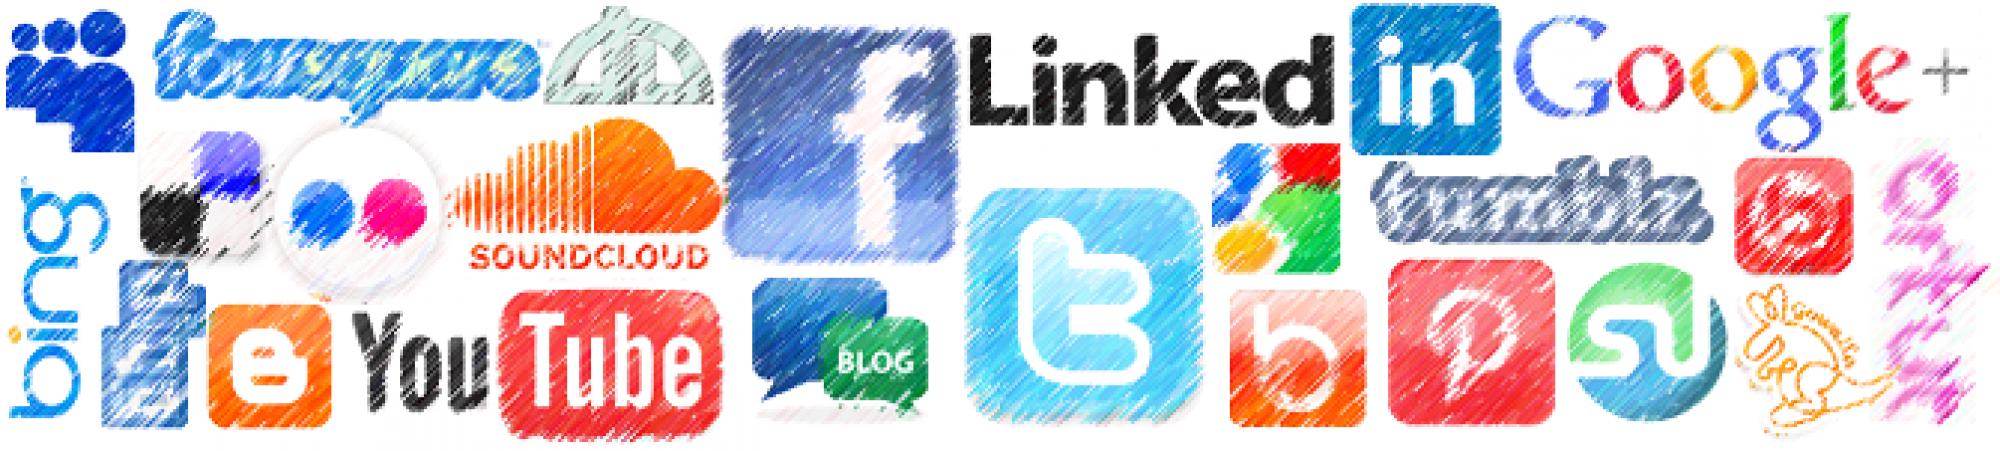 All of the major social networking providers symbols